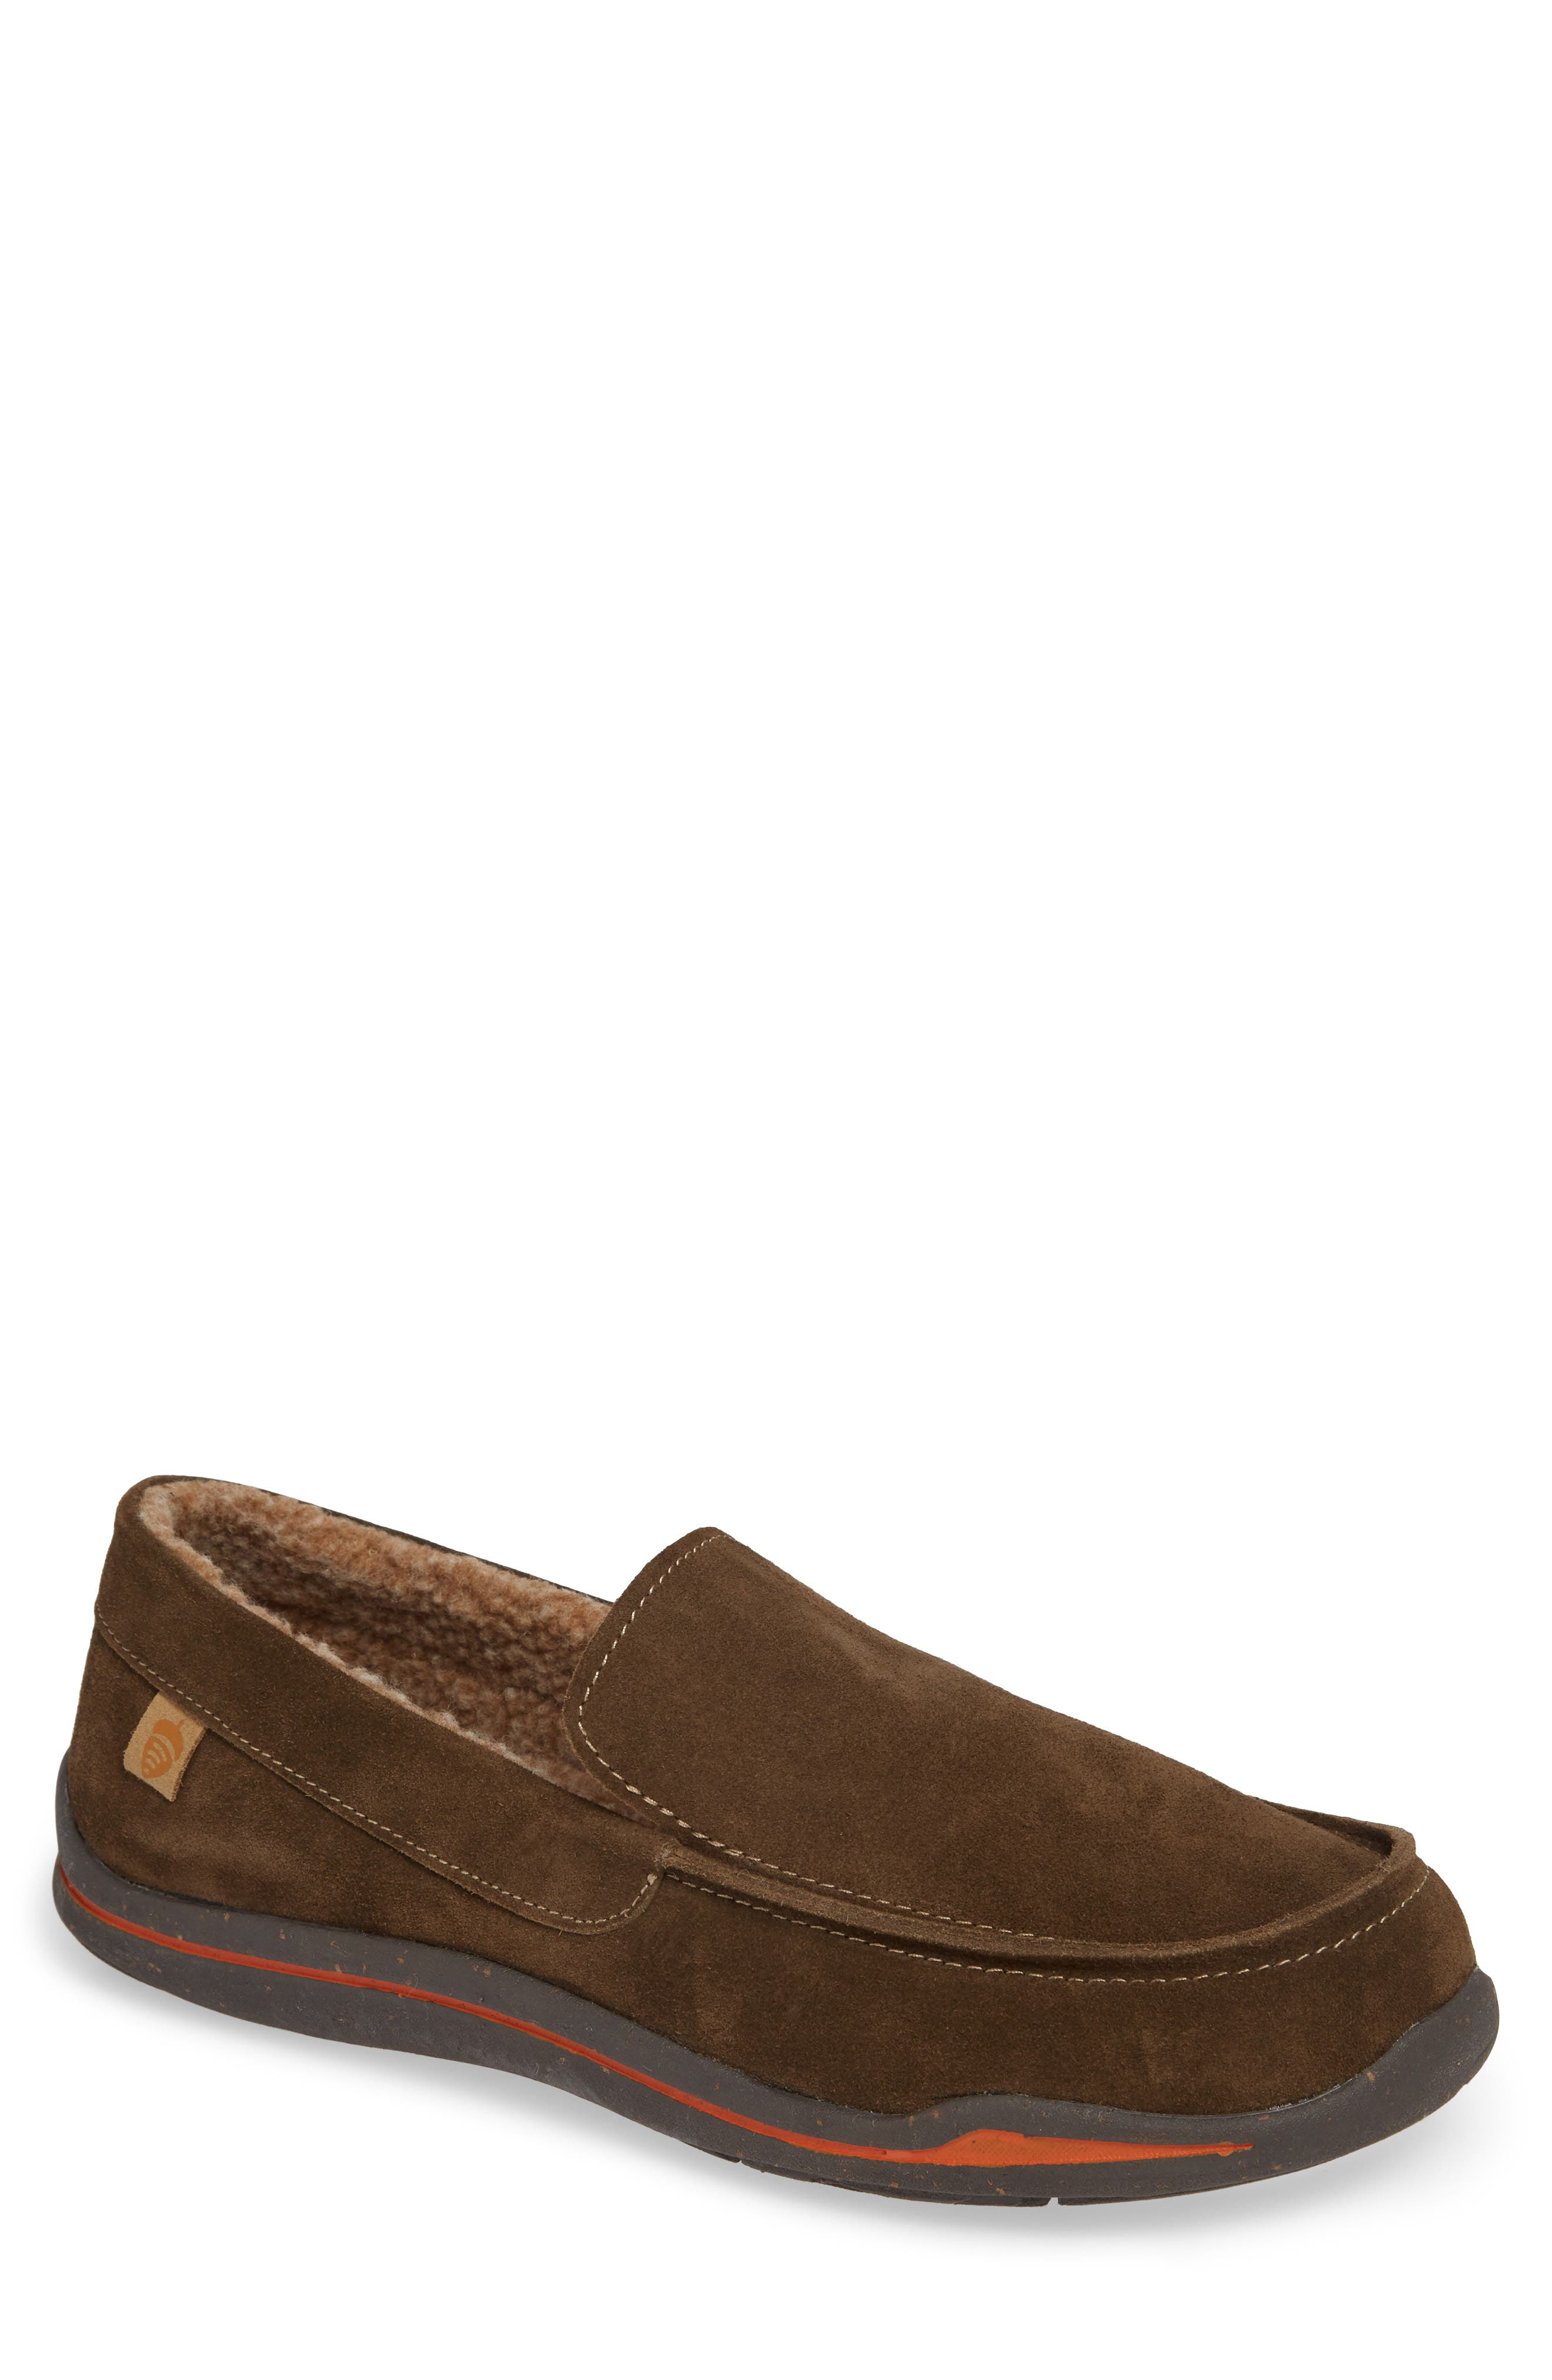 ACORN Ellsworth Moc Toe Slipper in Brown